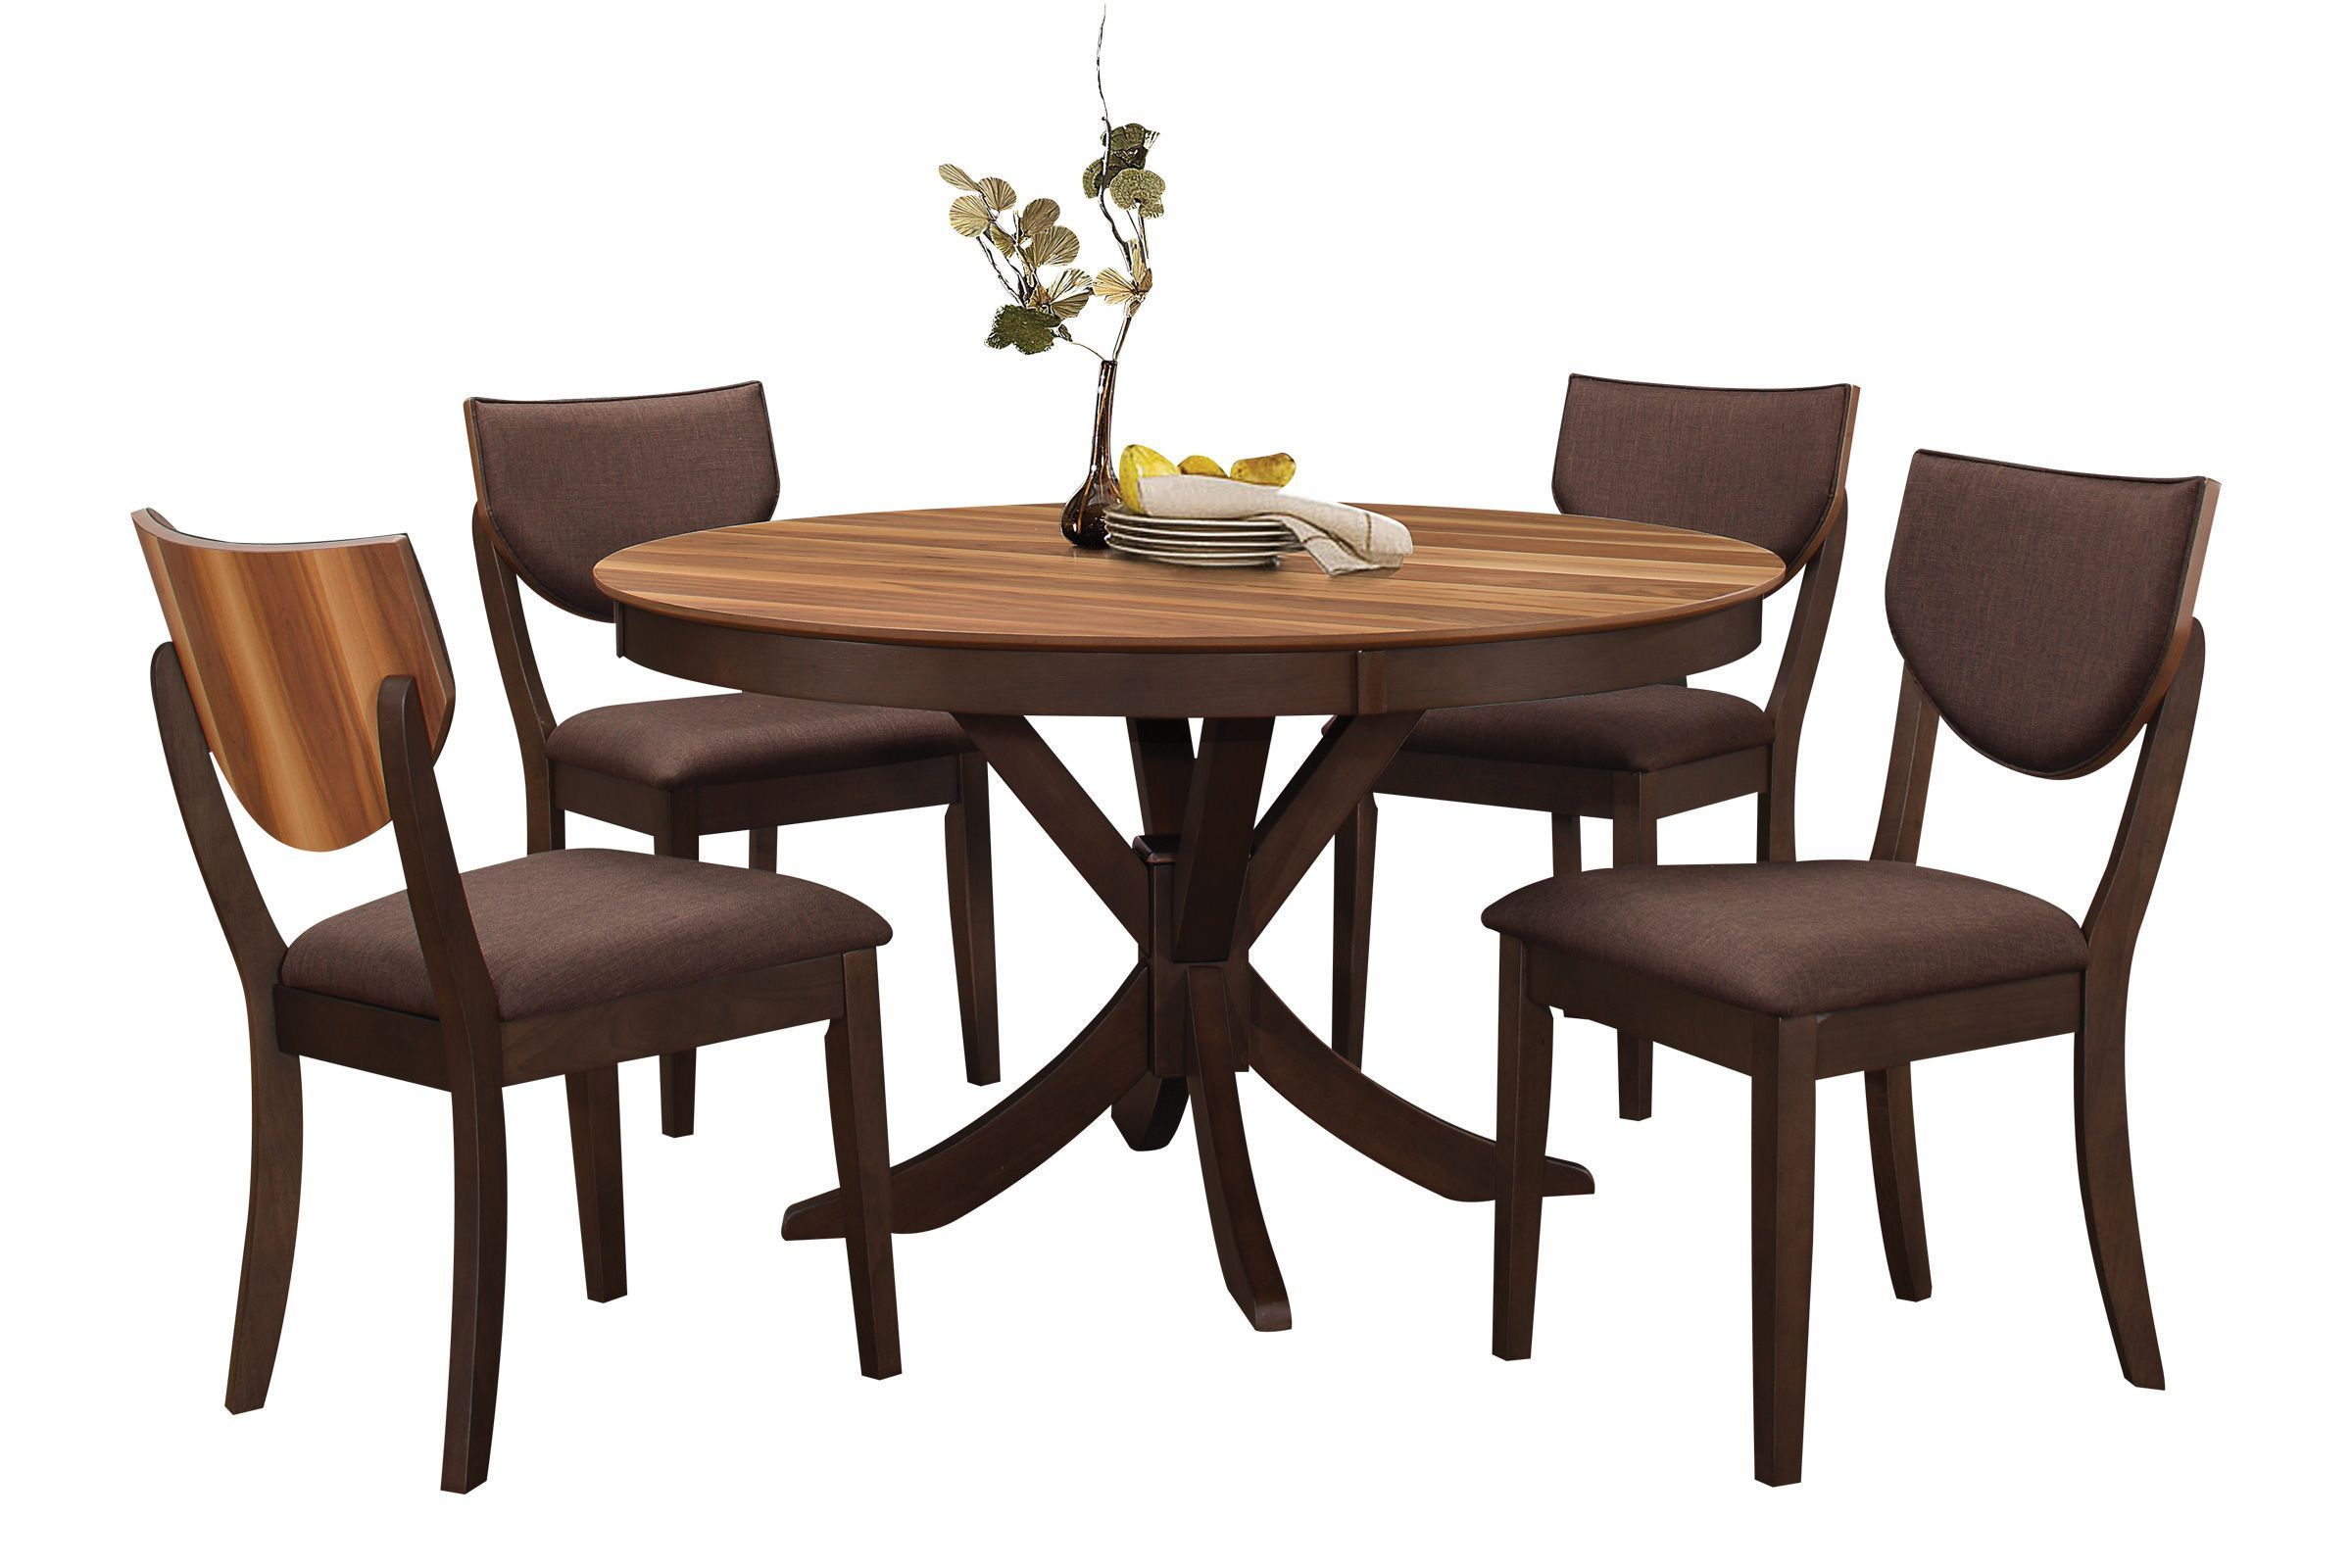 Turner Round Dining Table 4 Side Chairs In 2019 Products